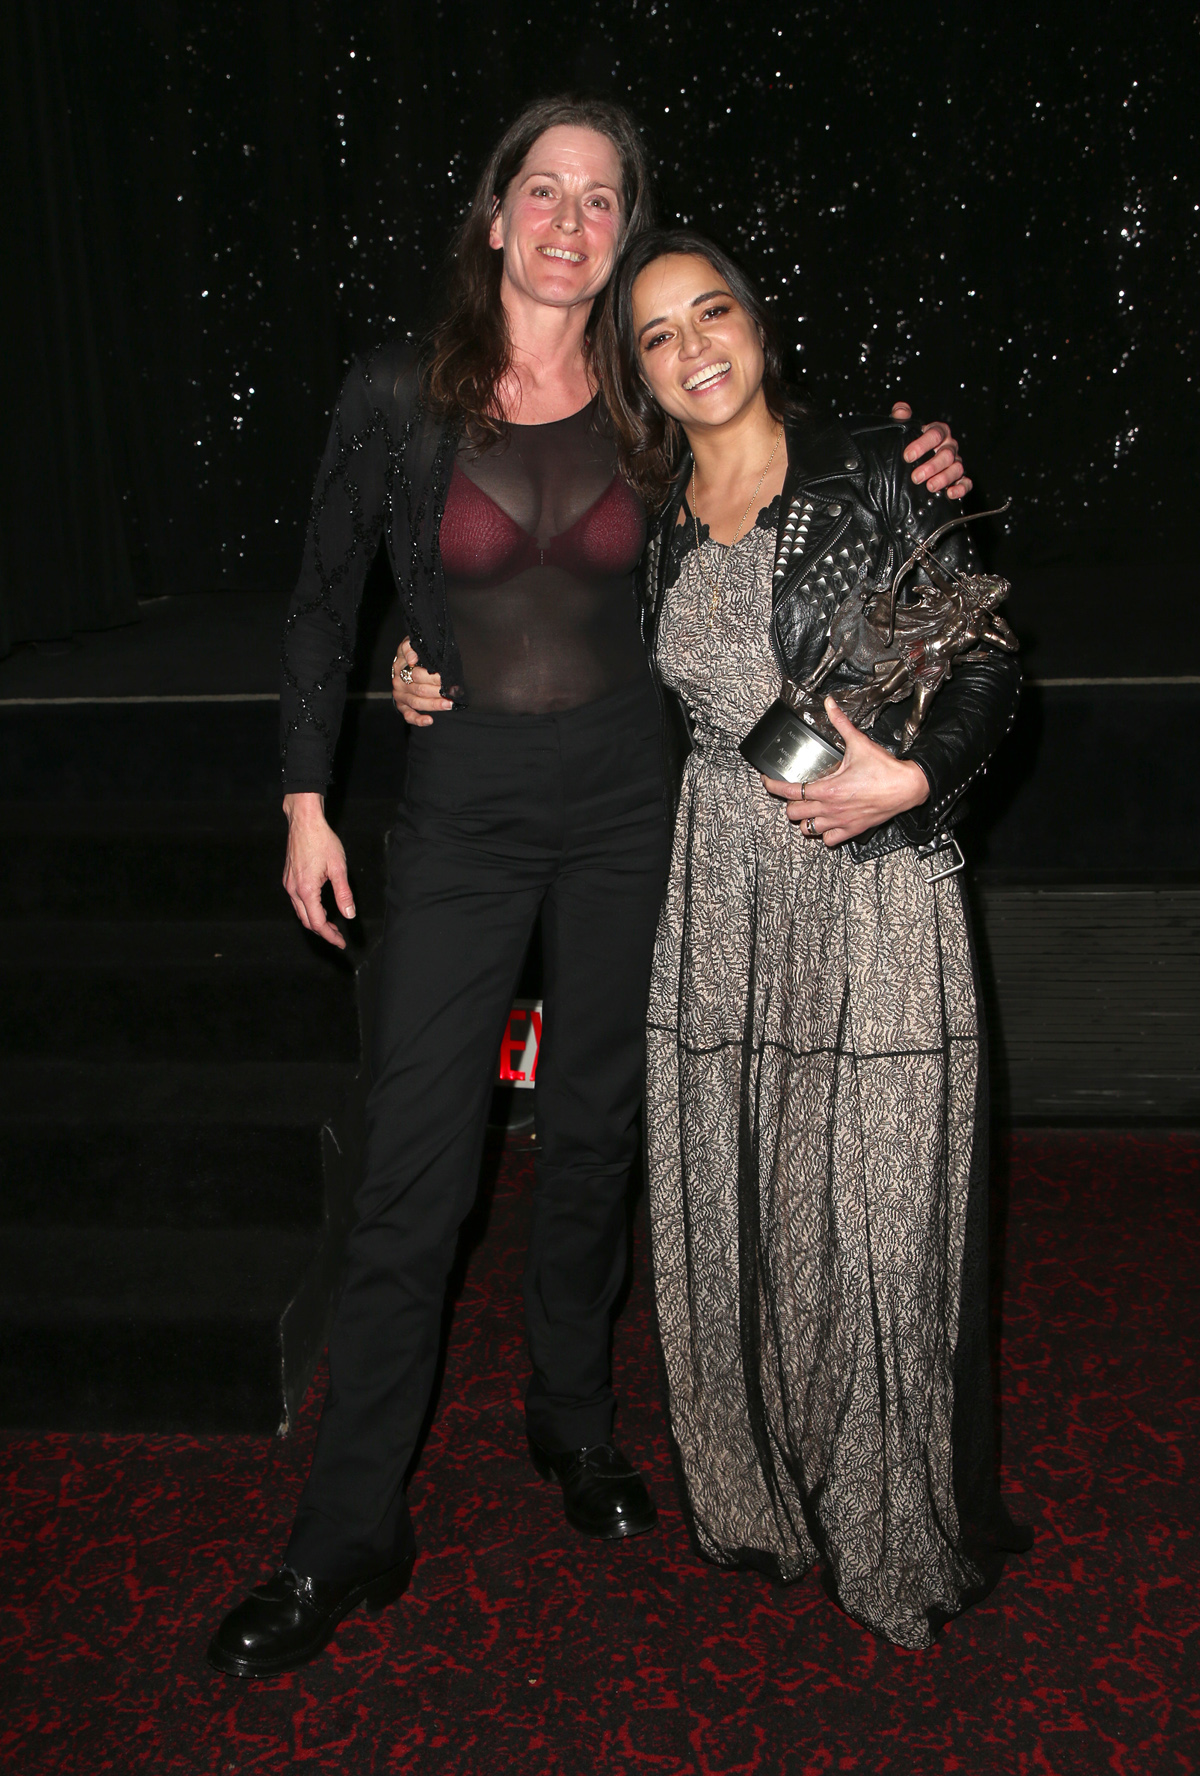 BEVERLY HILLS, CA - APRIL 26: Melanie Wise, Michelle Rodriguez, at the 2018 Artemis Awards Gala at the Ahrya Fine Arts Theater in Beverly Hills, California on April 26, 2018. Credit: Faye Sadou/MediaPunch